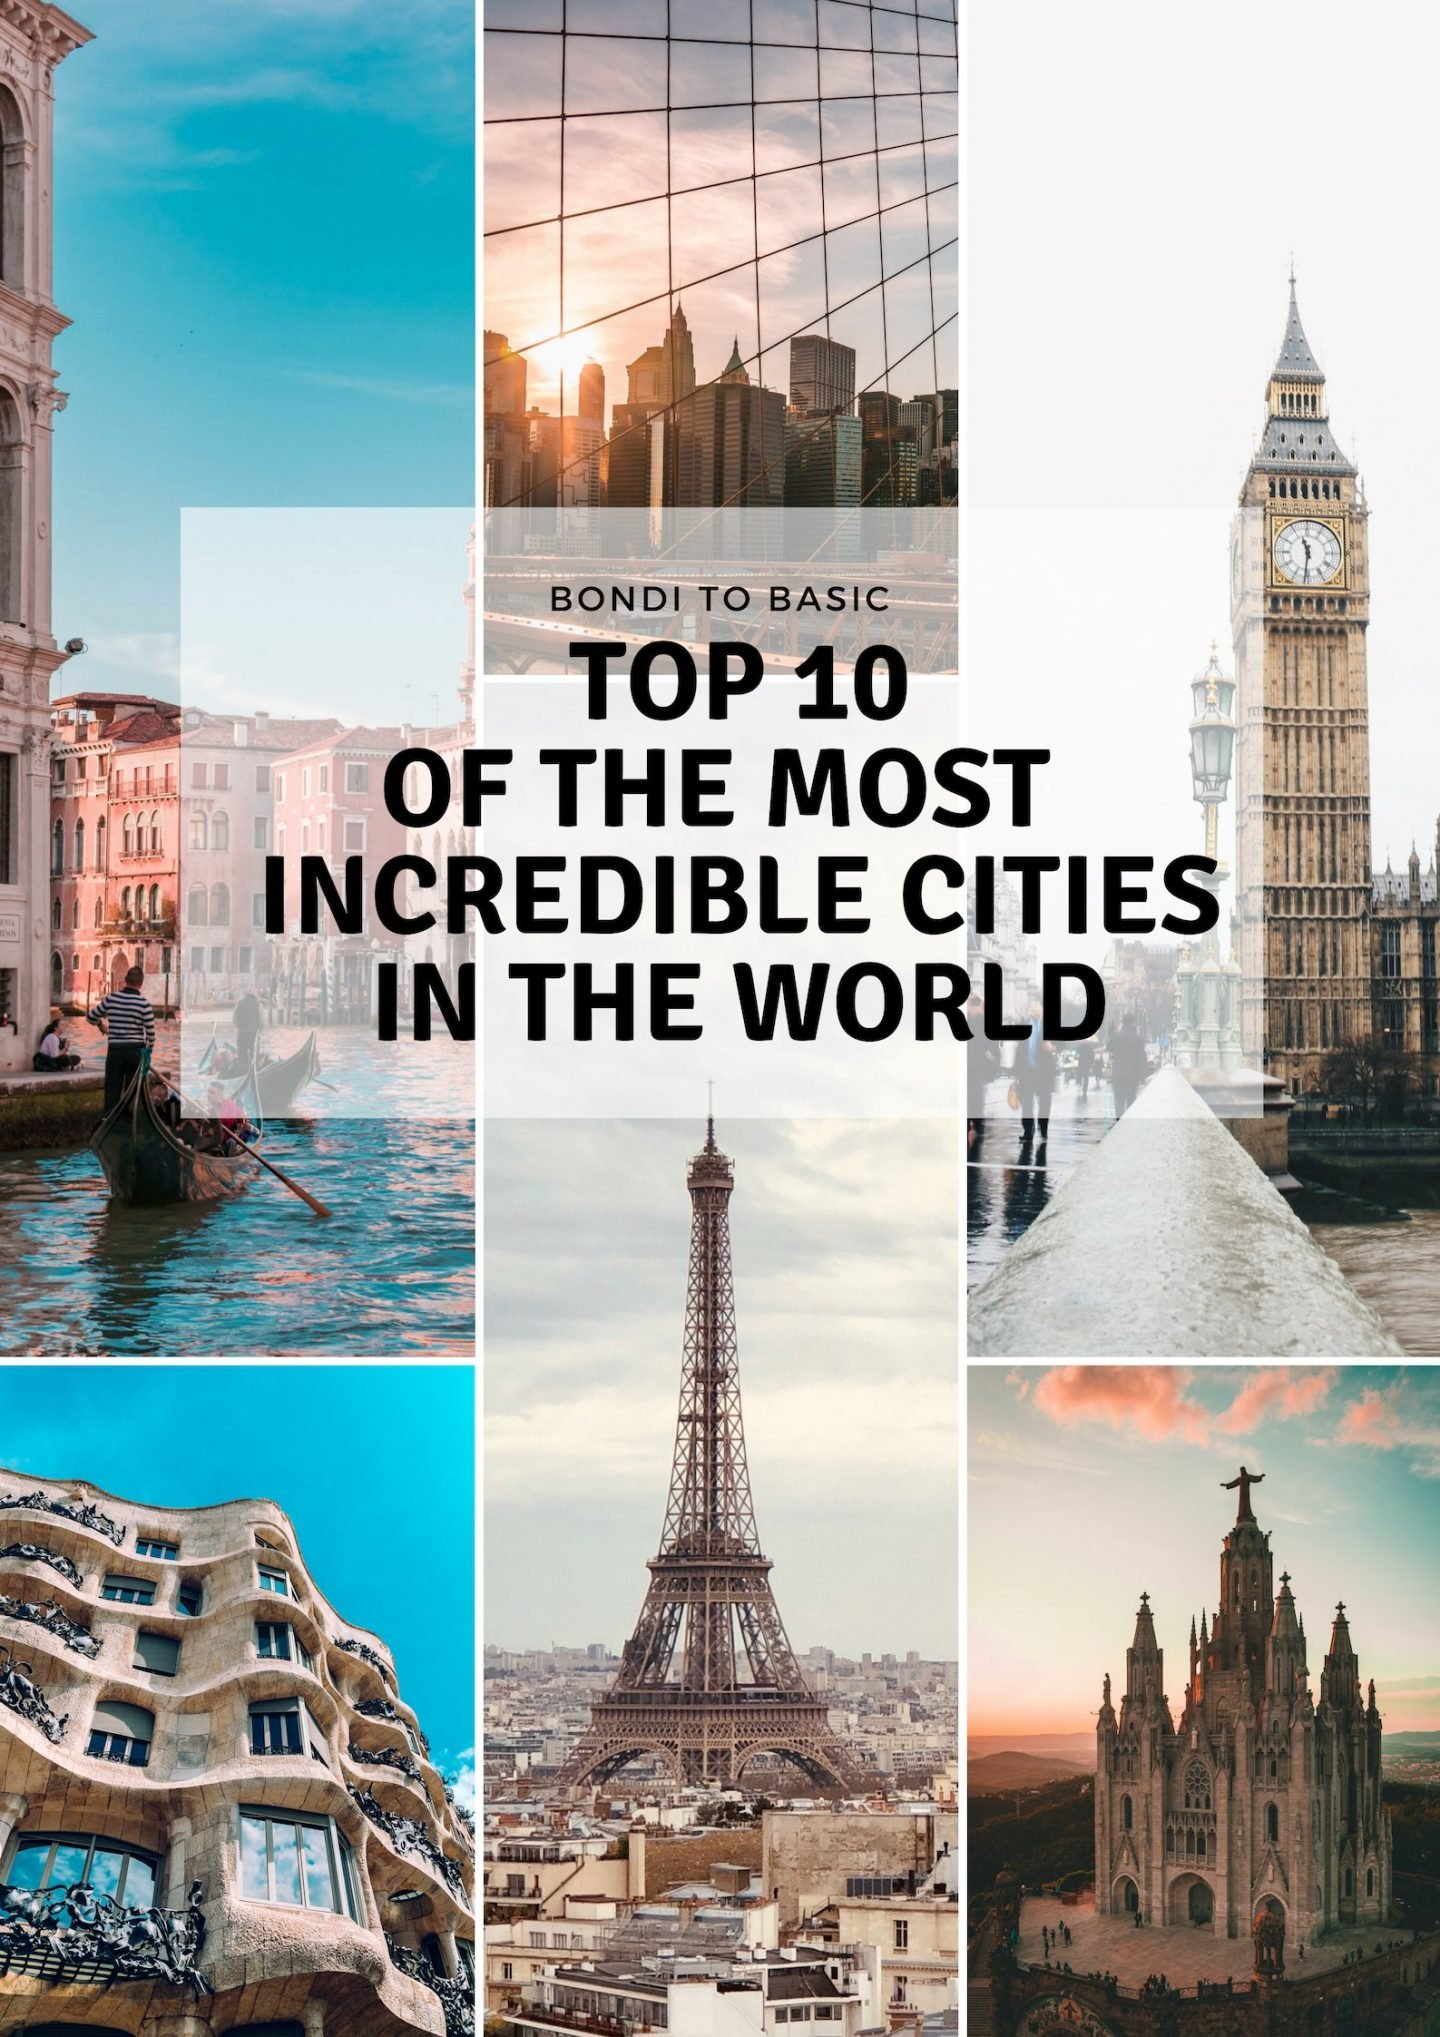 Top 10 must incredible cities - City trip around the world